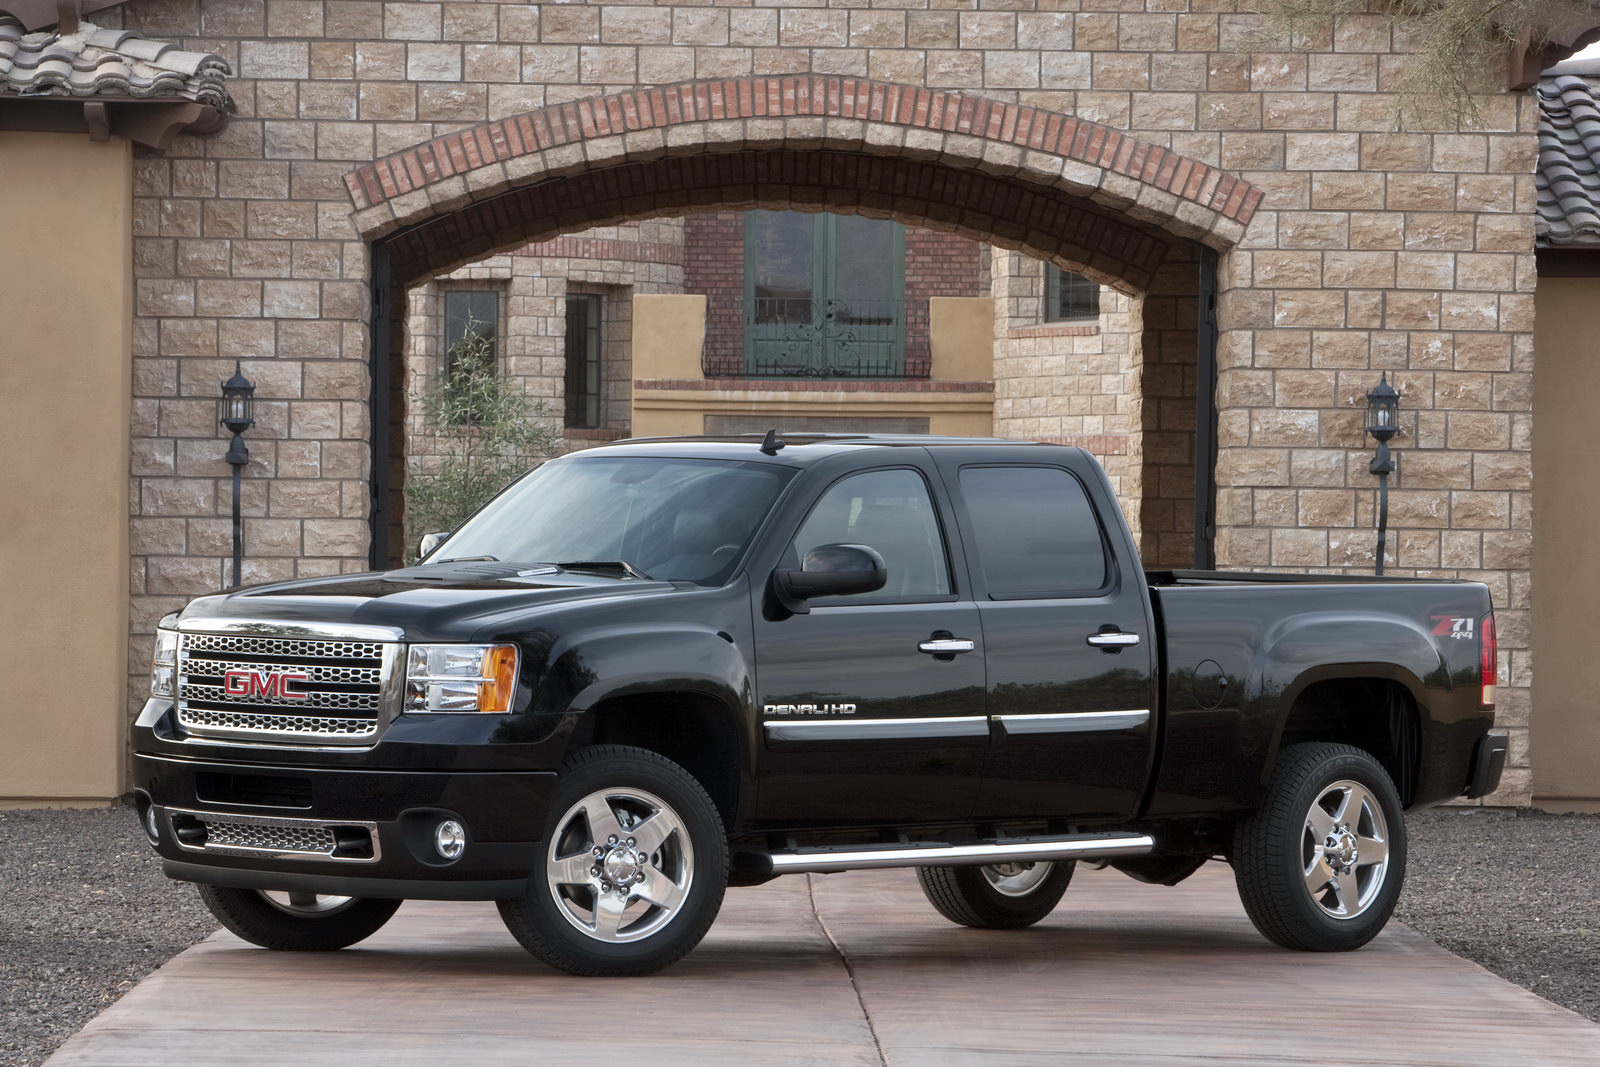 2011 GMC Sierra 2500hd #3